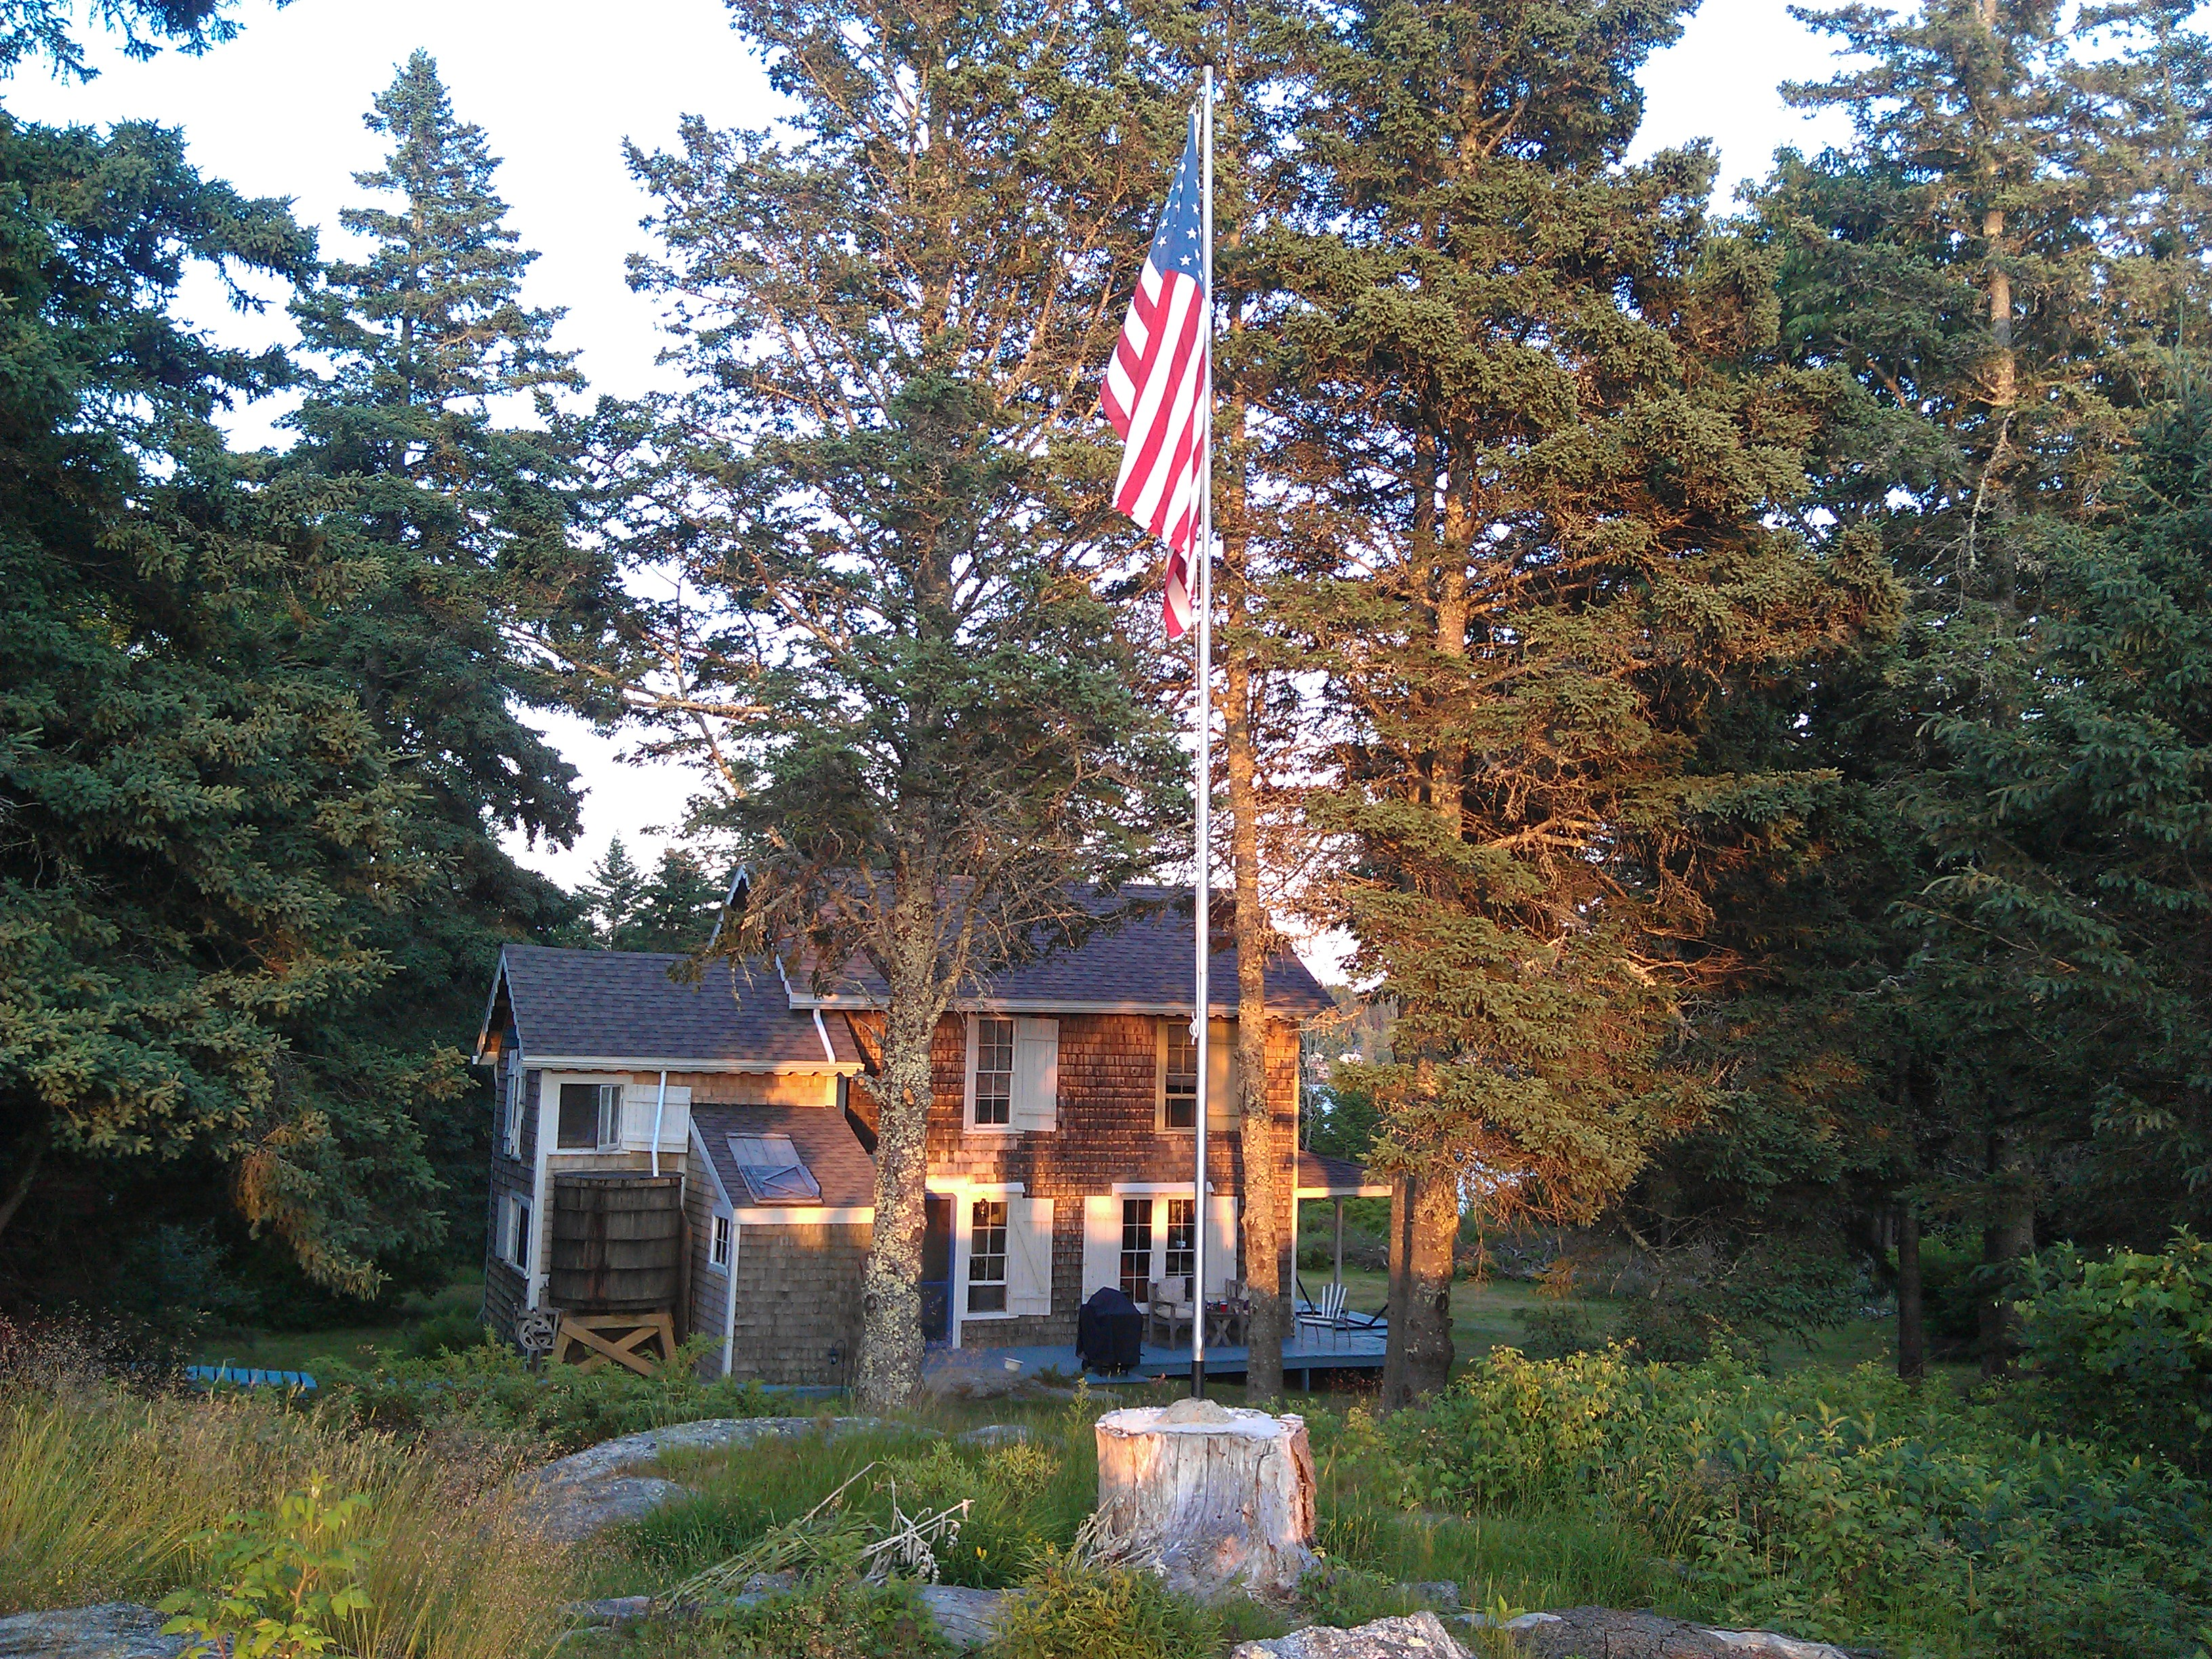 Flag pole at sunset